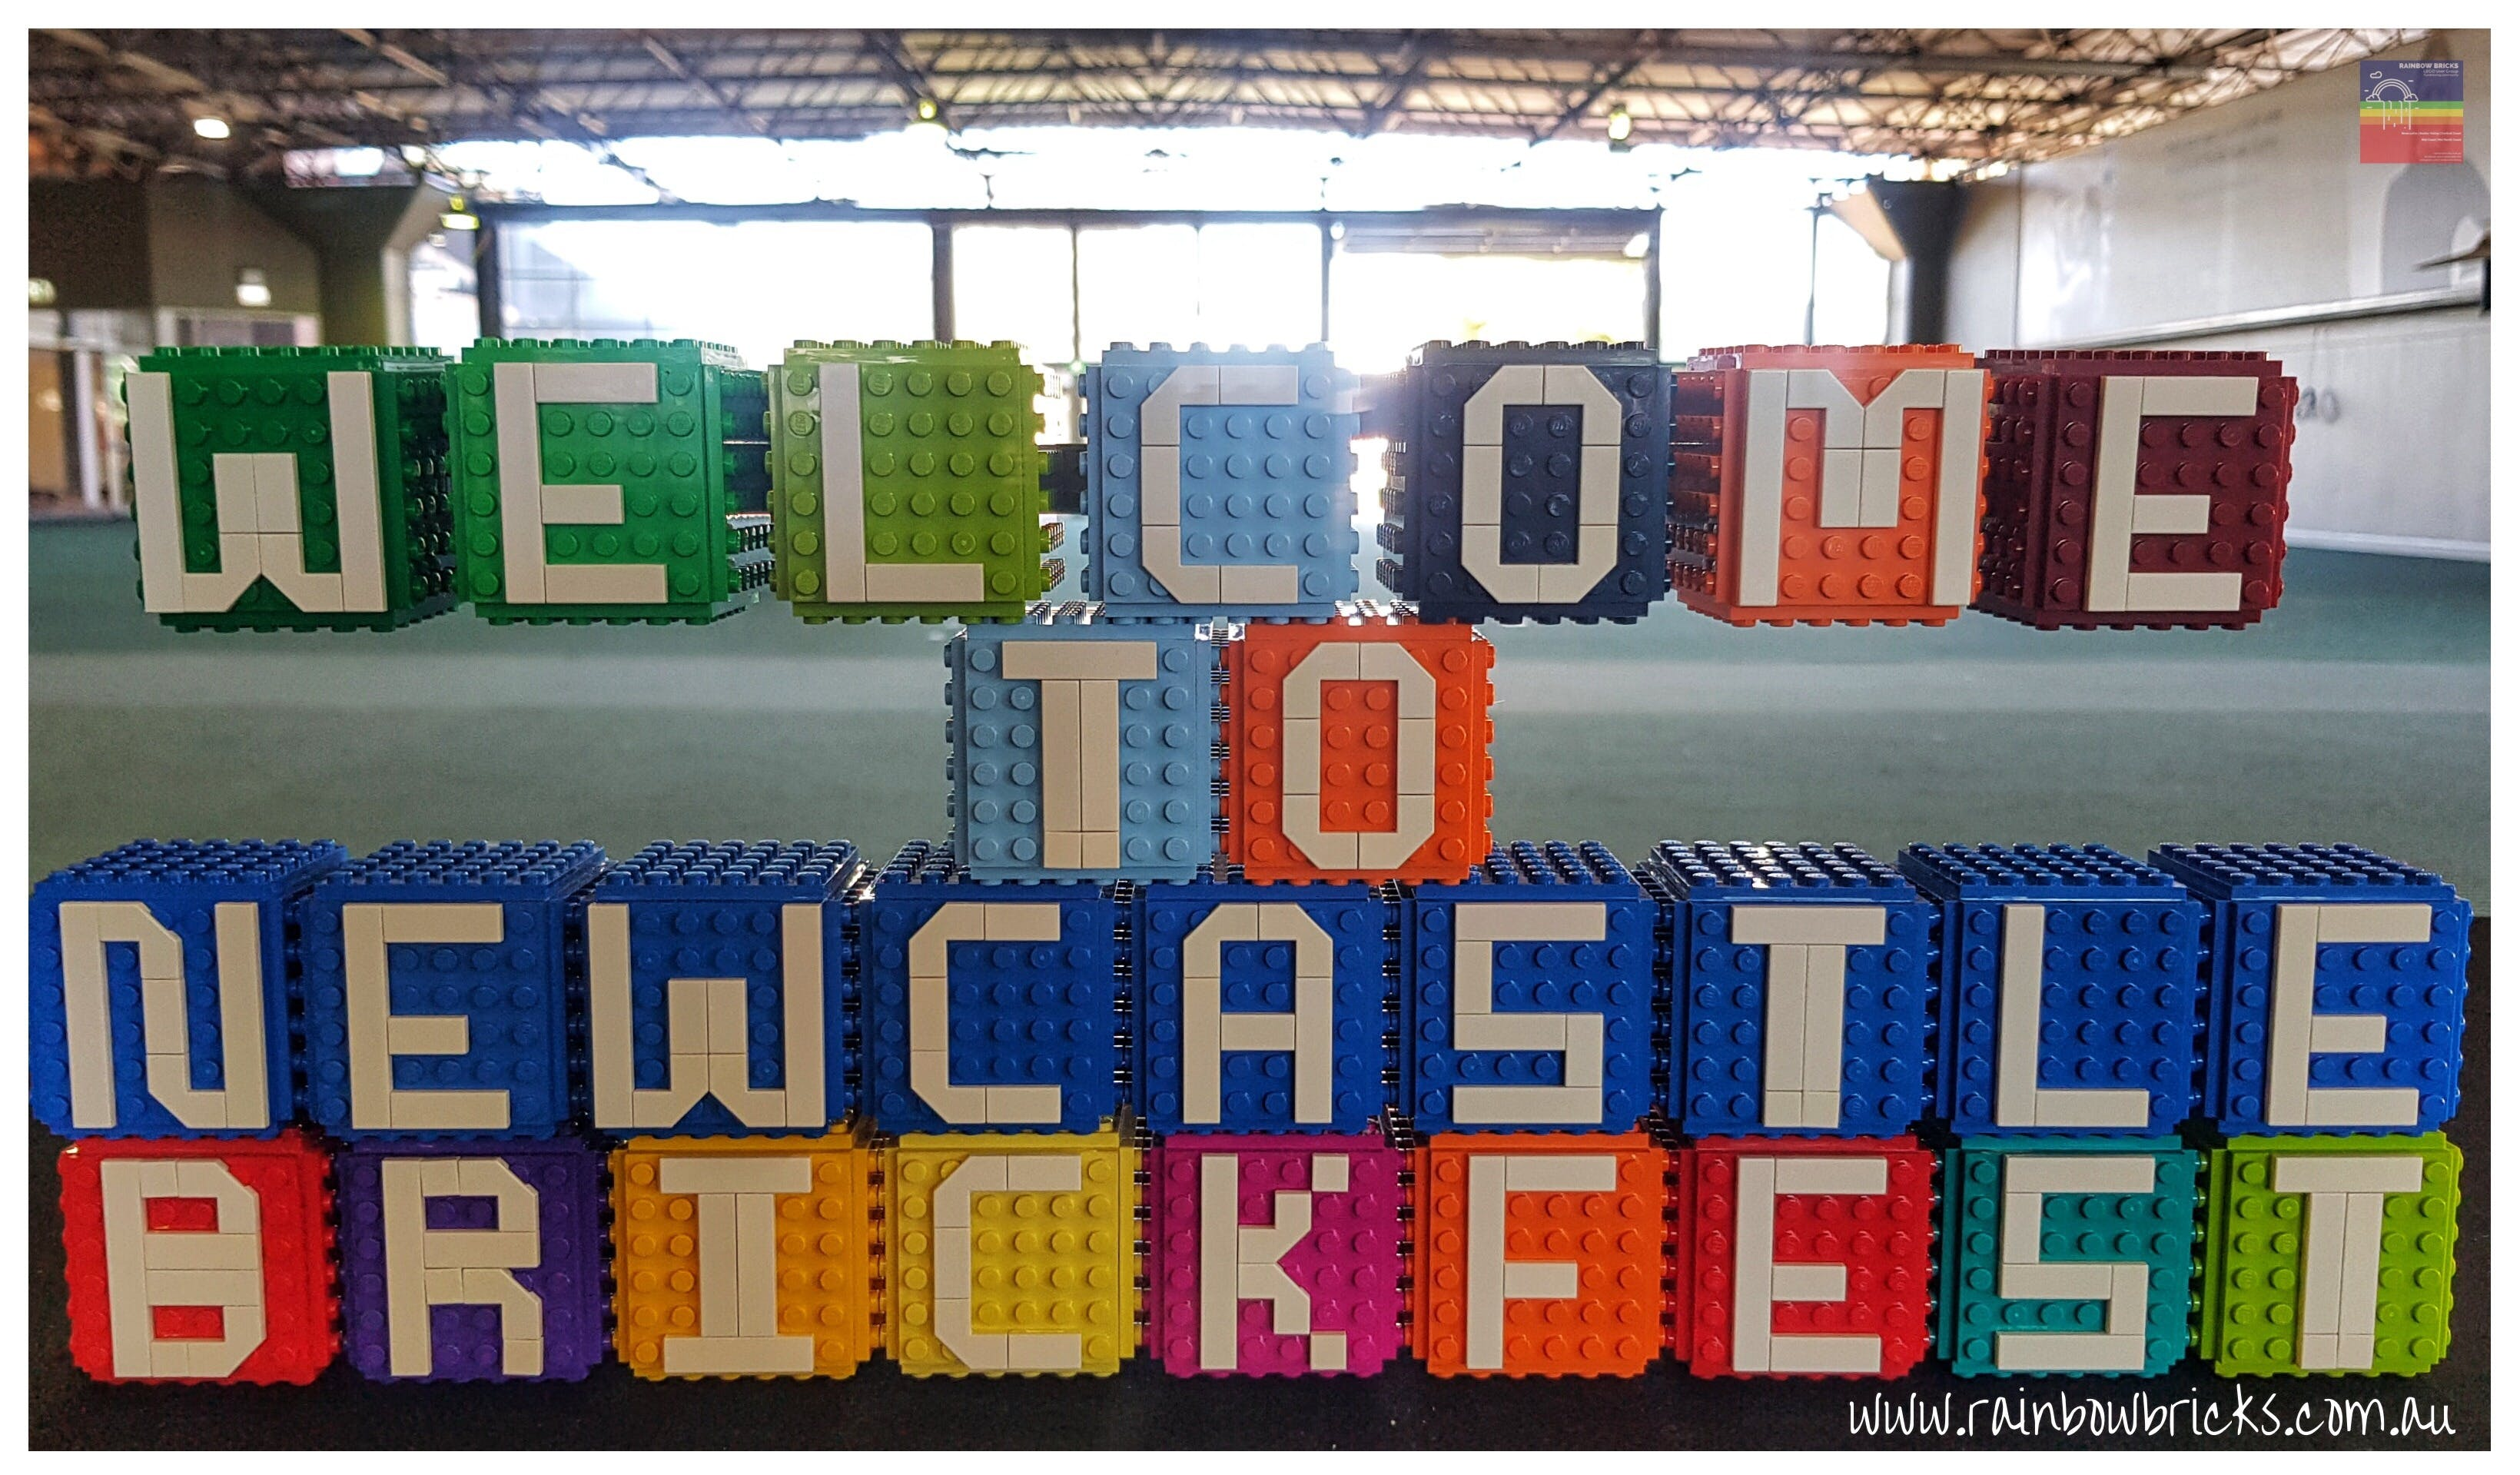 Newcastle Brickfest at Home A Virtual Lego Fan Event - Accommodation Newcastle